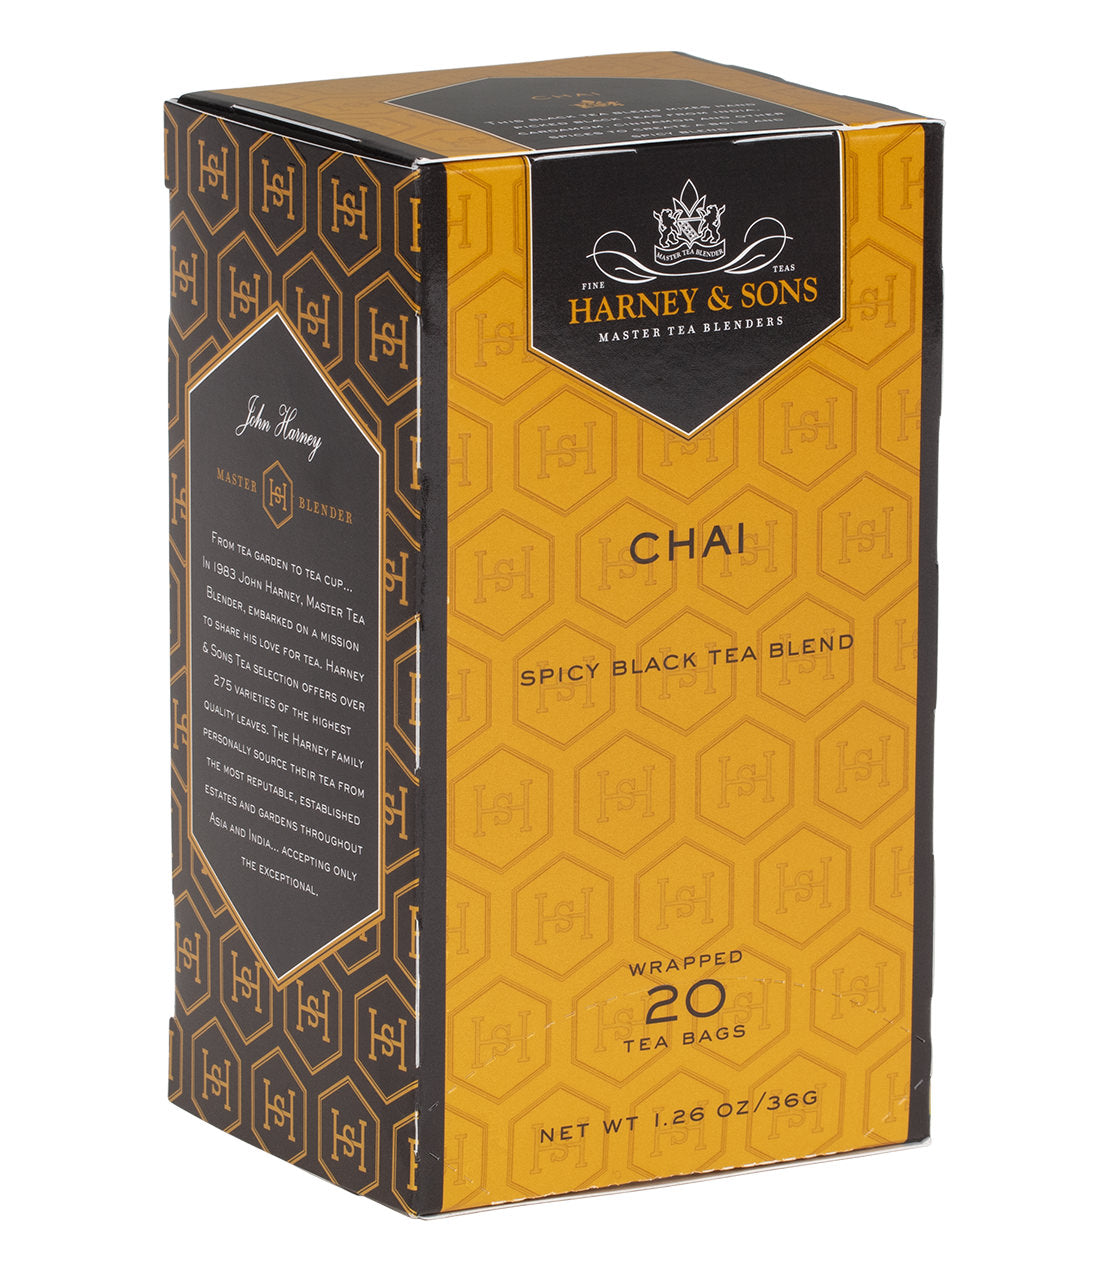 HARNEY AND SONS CHAI TEA